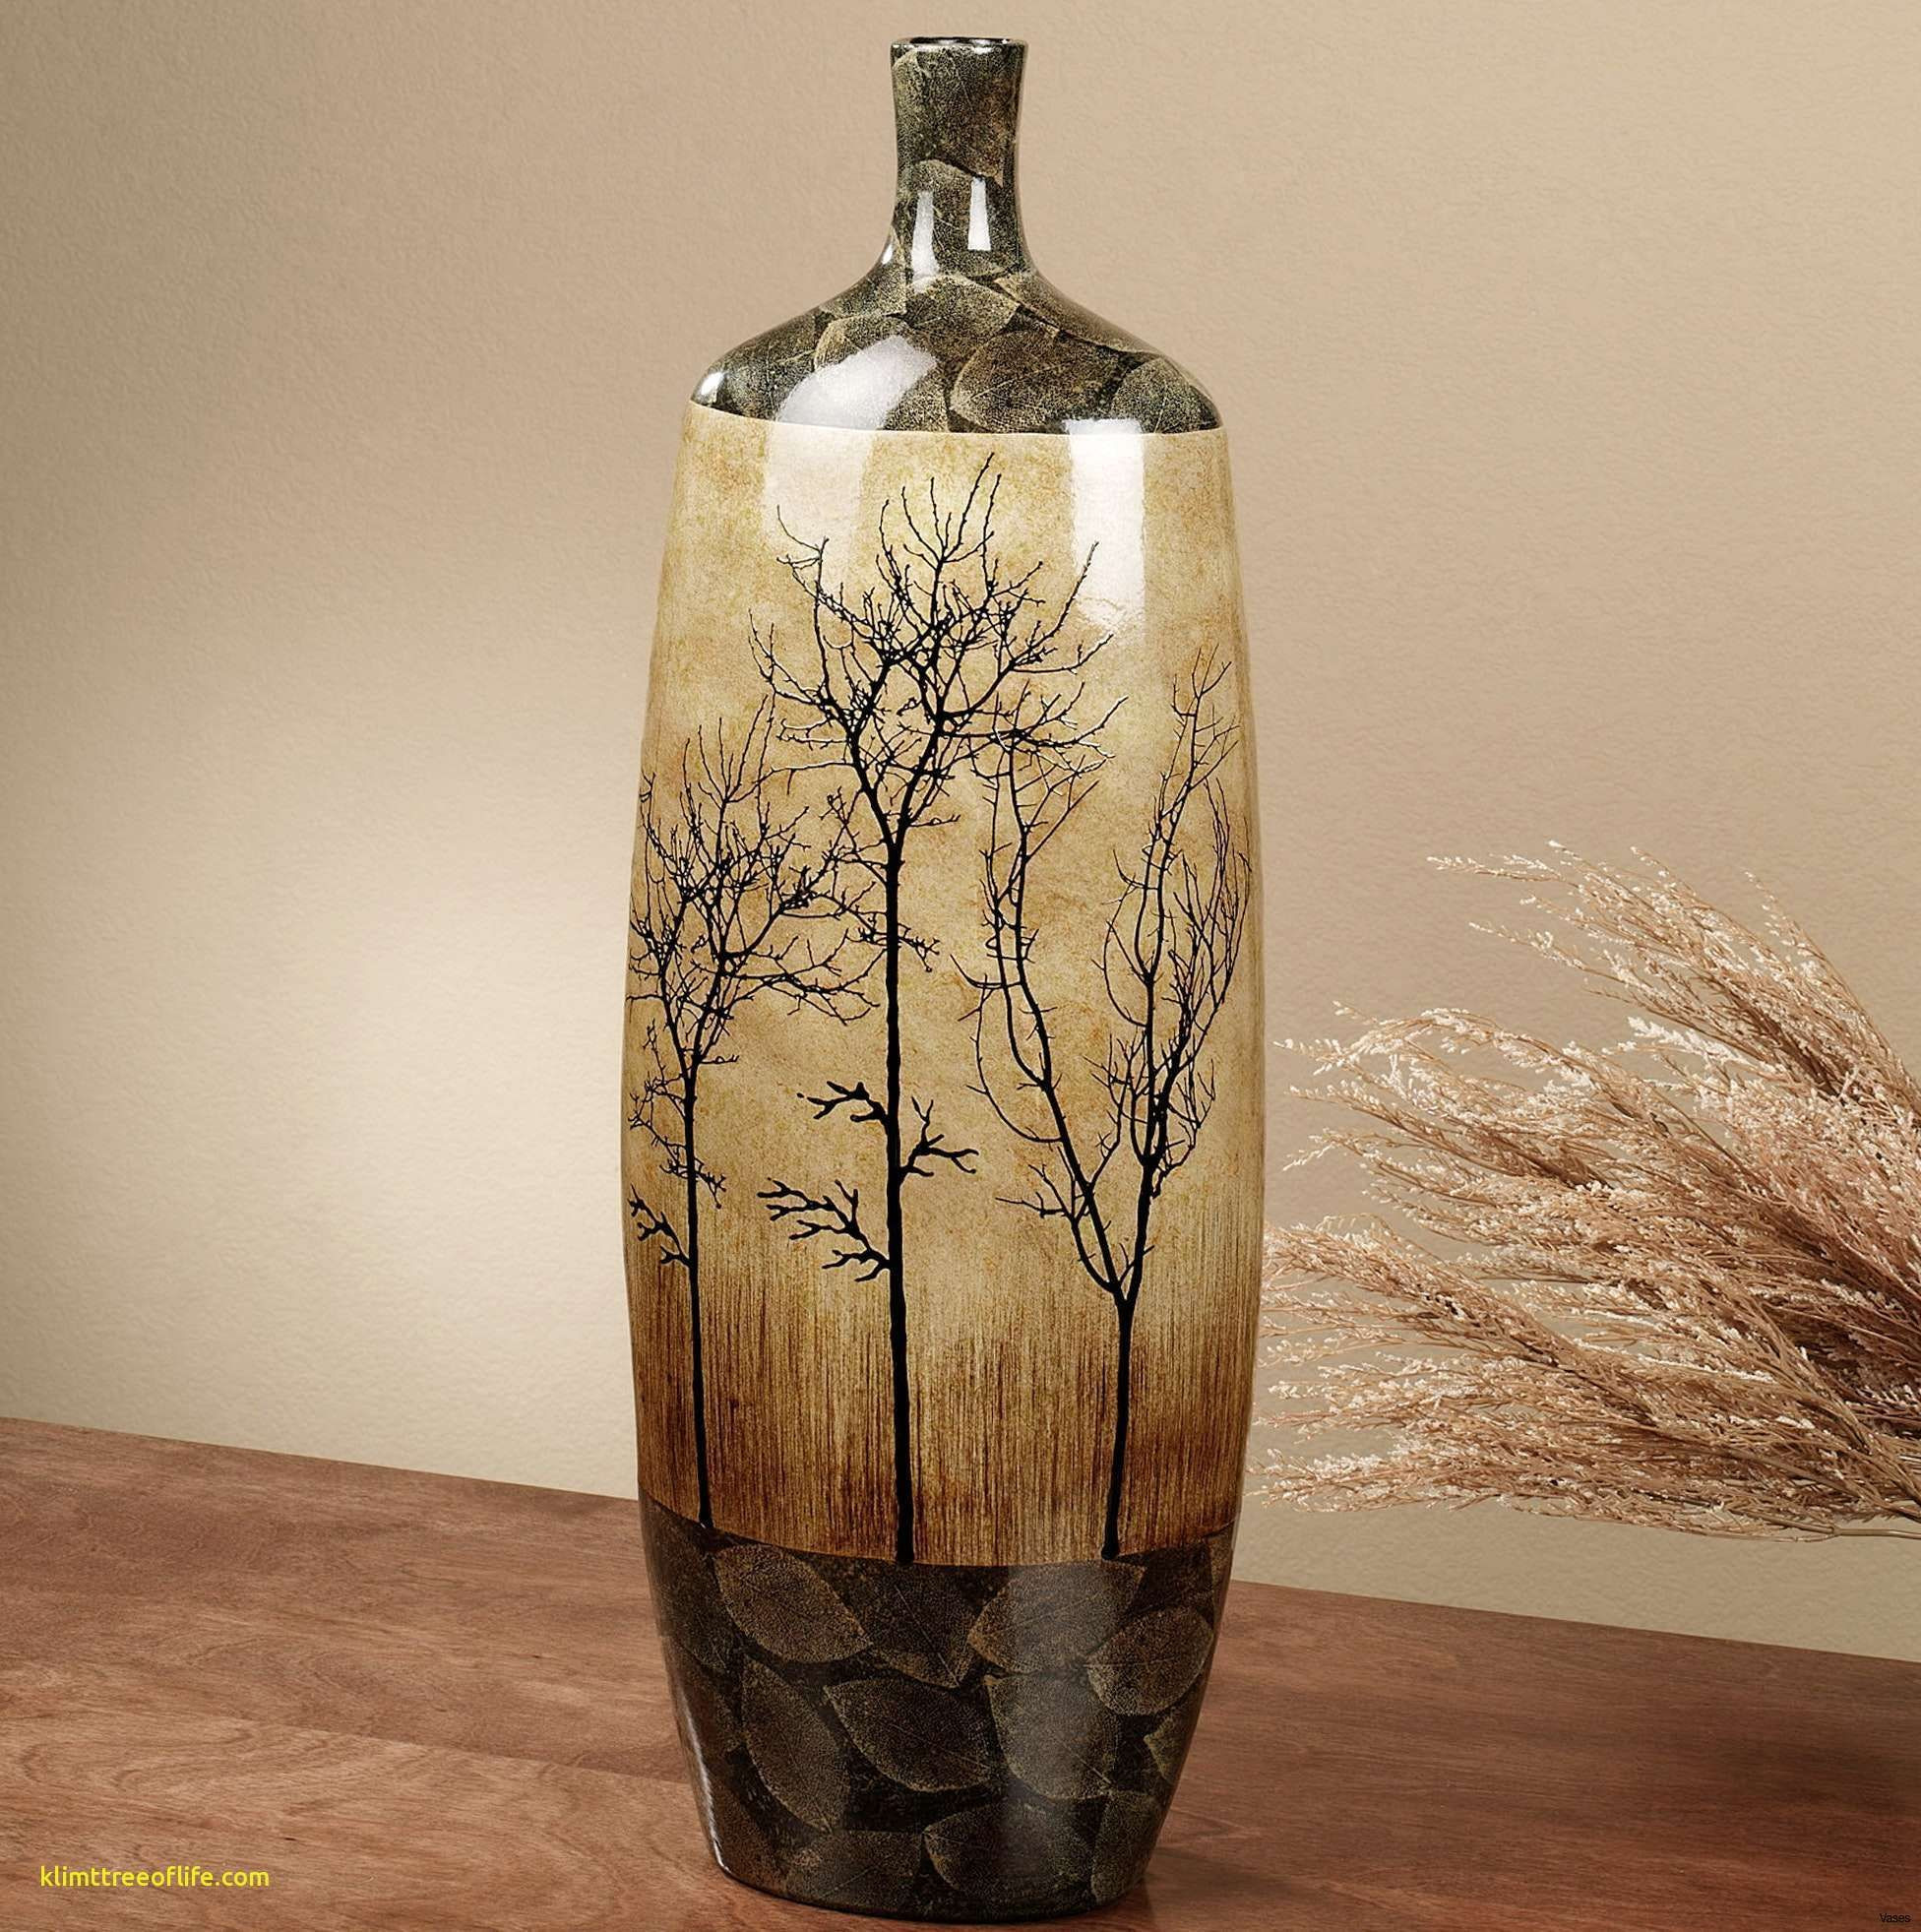 Ceramic Cube Vase Of Large Vase Decor Inspirational 39 Awesome Vase Decoration Ideas with Regard to Large Vase Decor Inspirational 39 Awesome Vase Decoration Ideas Graphics